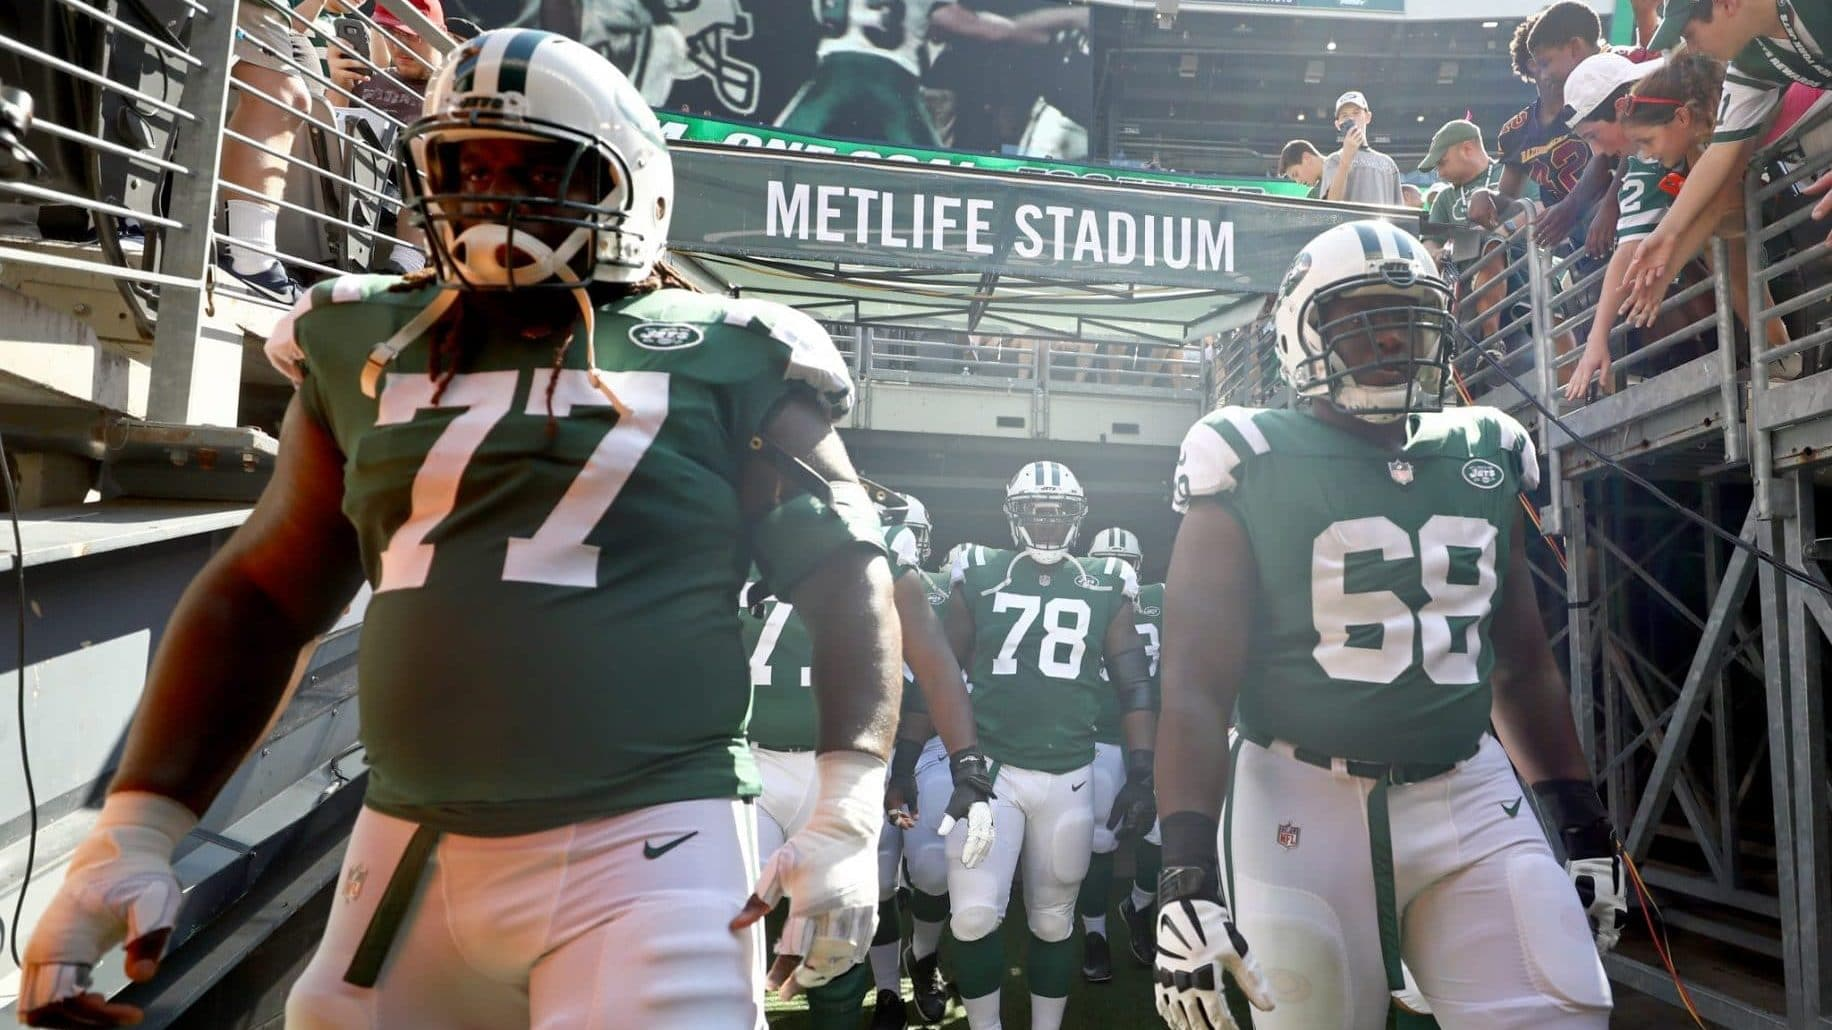 Gettyimages-853080248-new-york-jets-2018-nfl-draft-mike-maccagnan-ol-allergies-e1533448466749